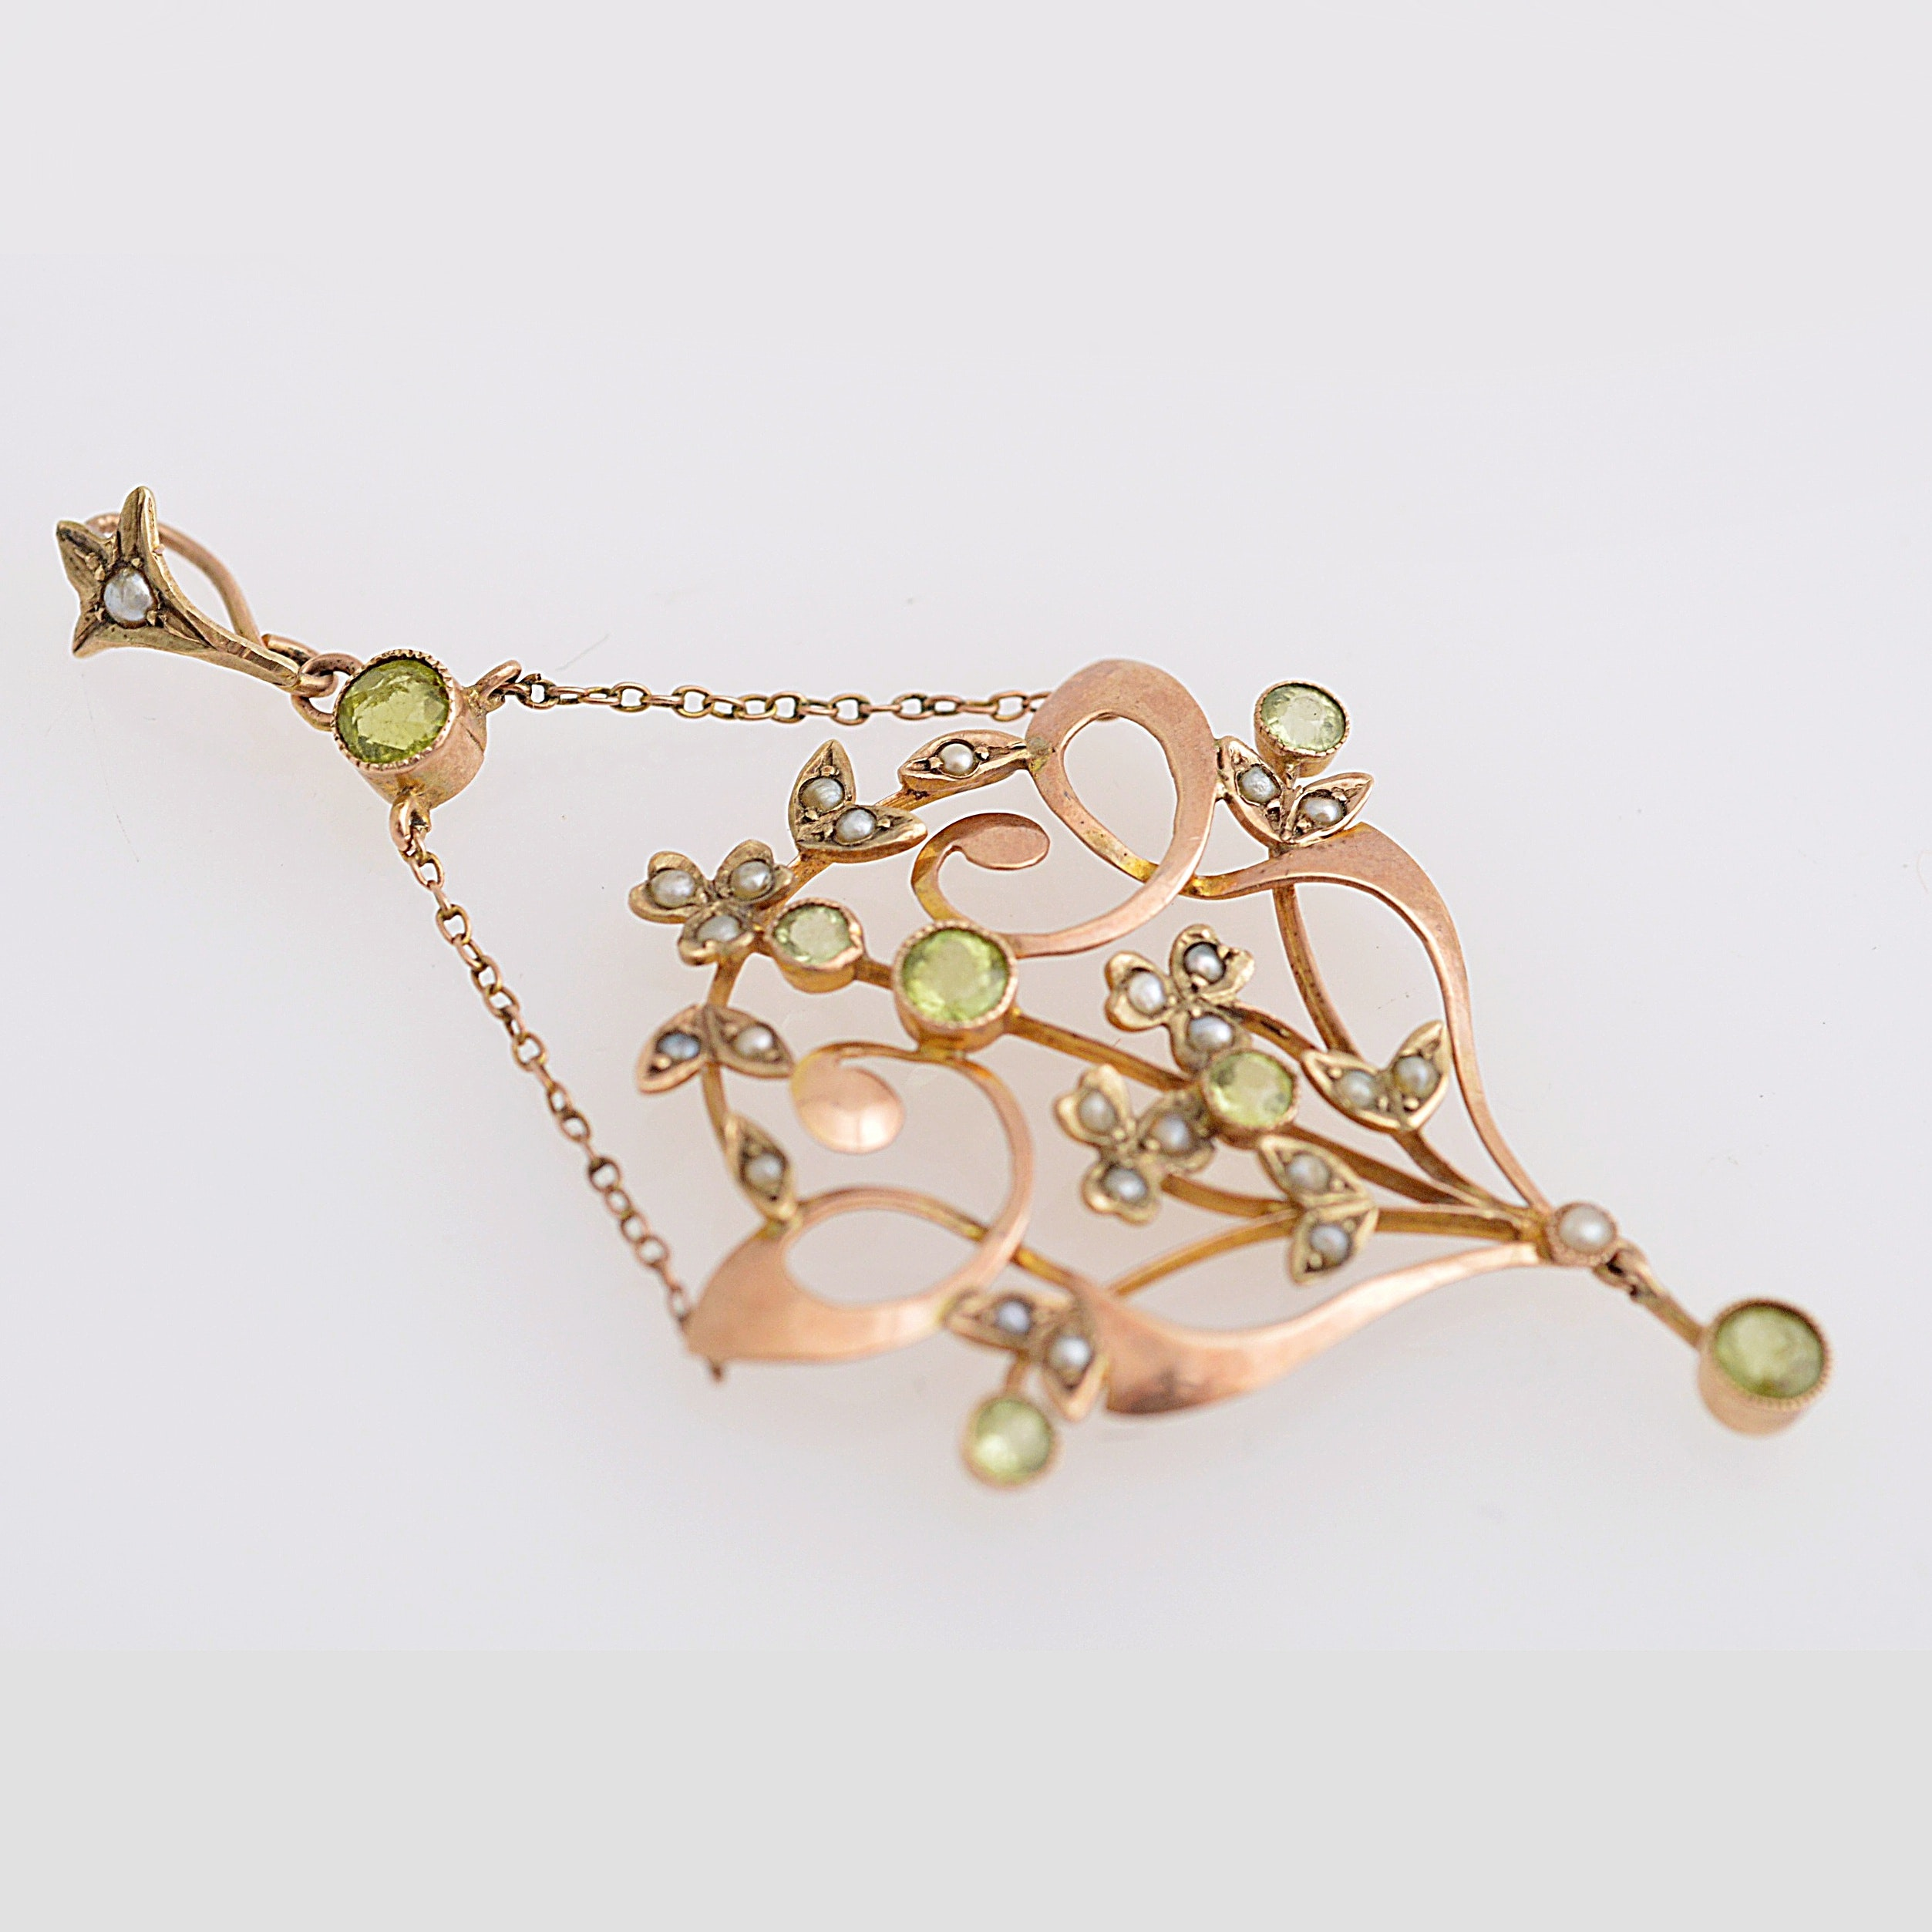 Art Nouveau 10K Yellow Gold, Peridot and Seed Pearl Pendant